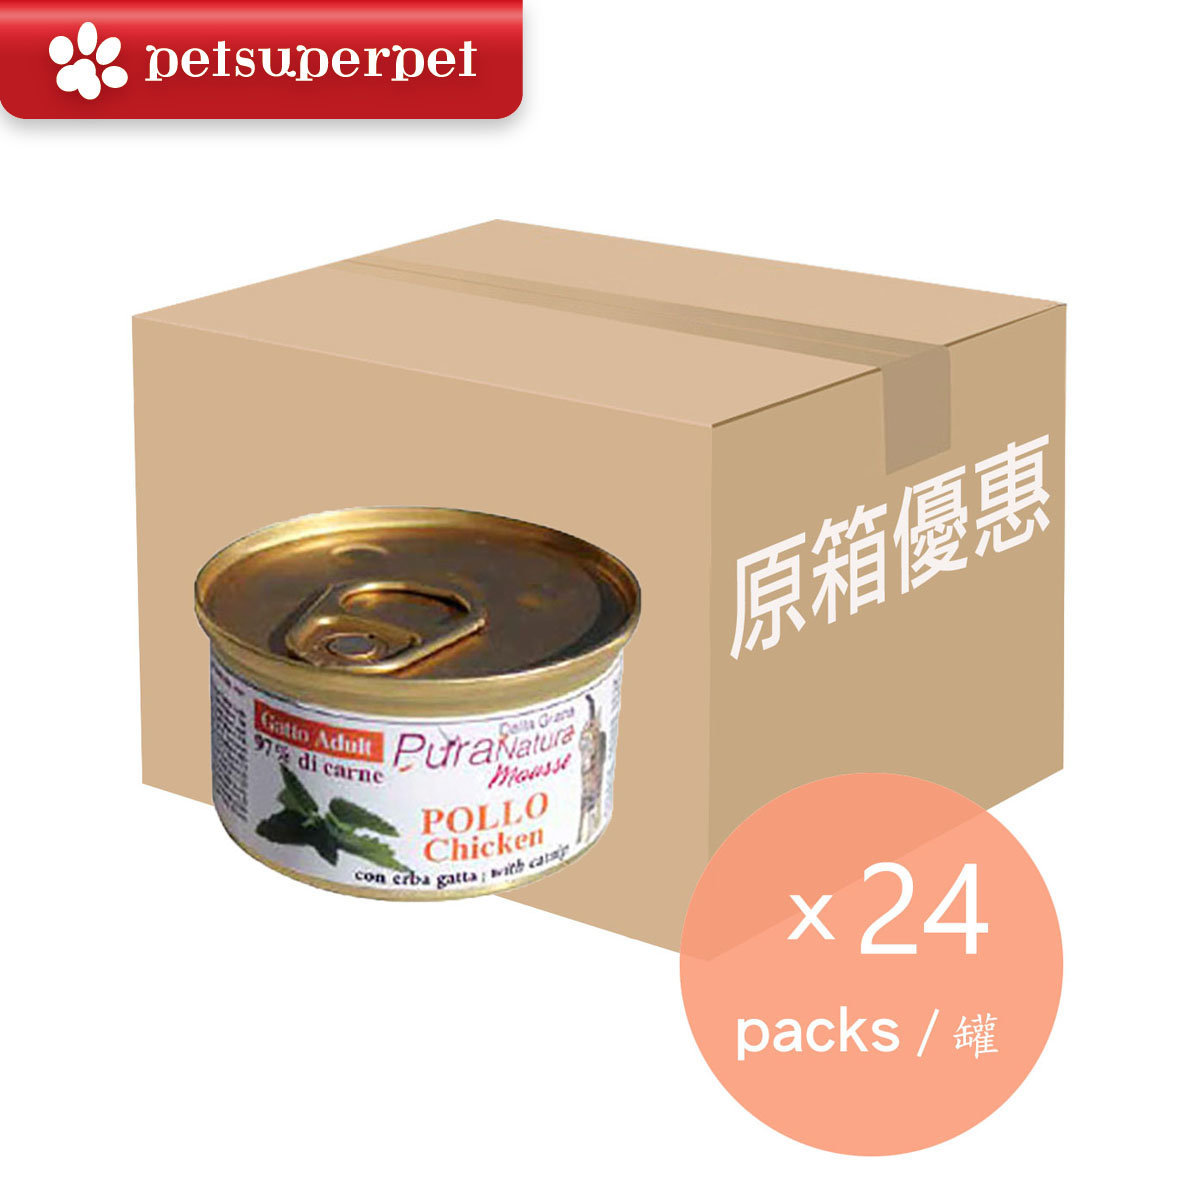 【Expiry date:19/01/2021】【Full ctn】Chicken with Catnip for Adult Cat - 85g X24